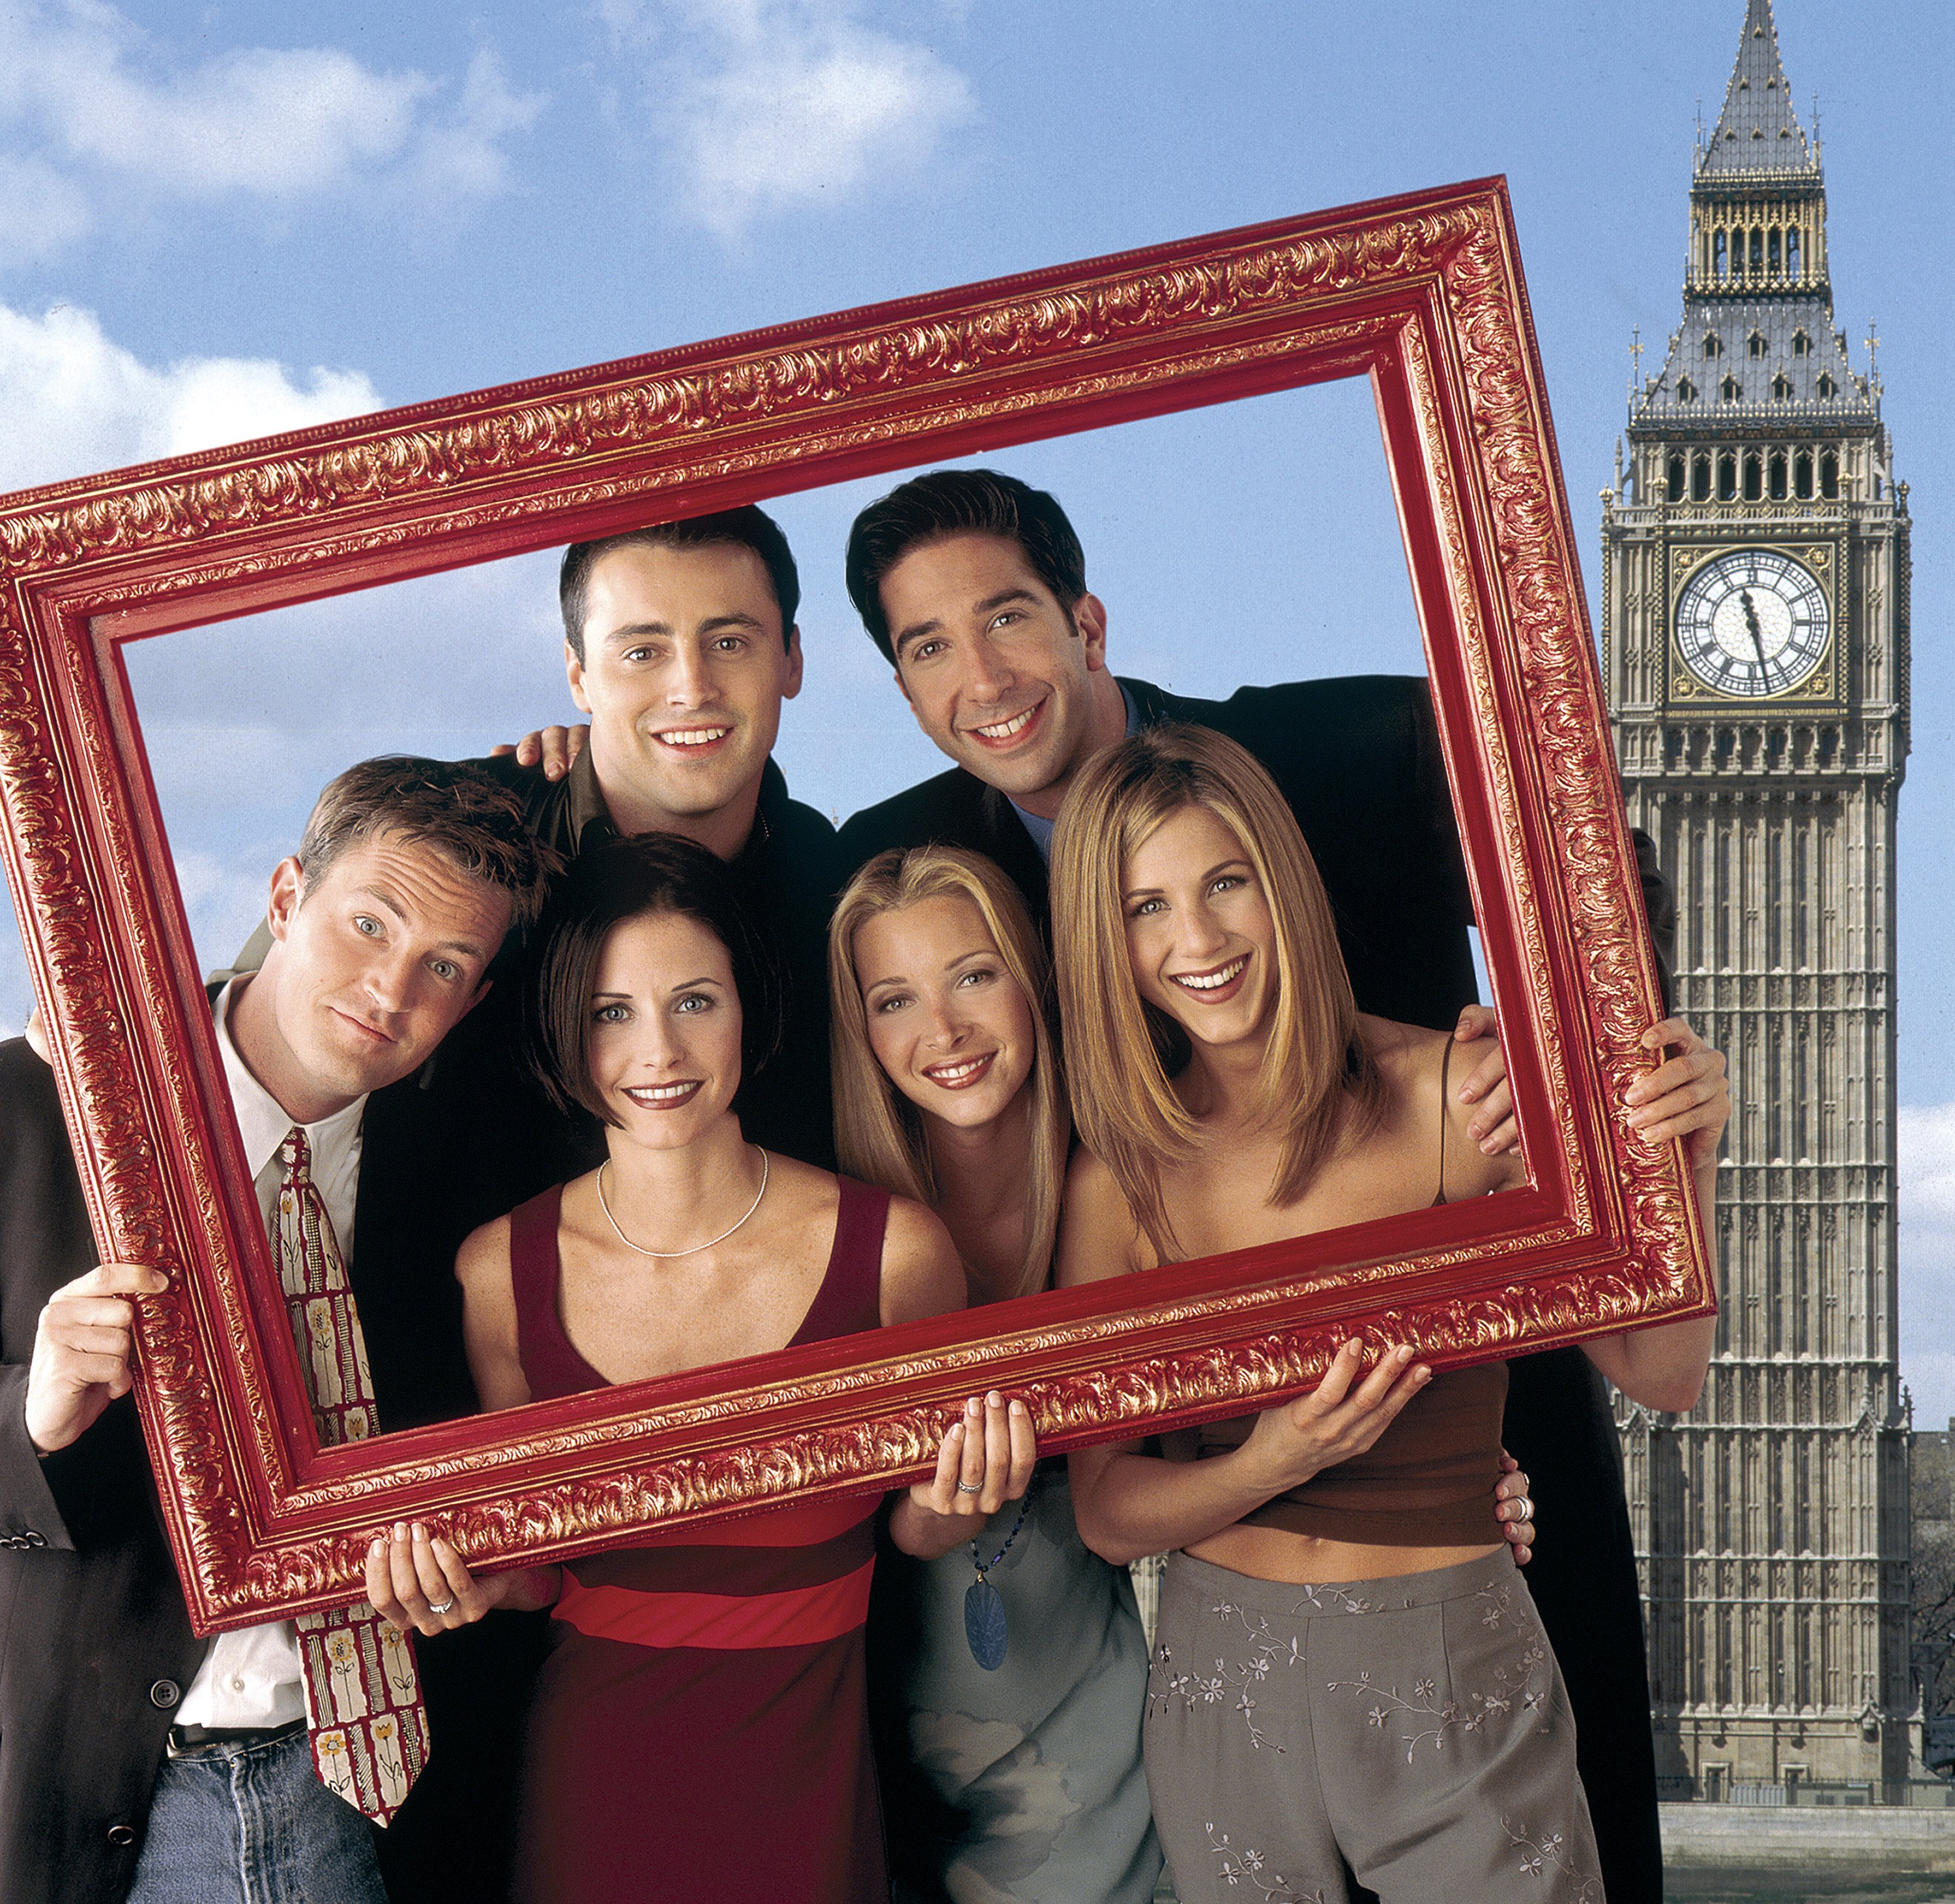 Actually, Friends isn't problematic or homophobic – here's why